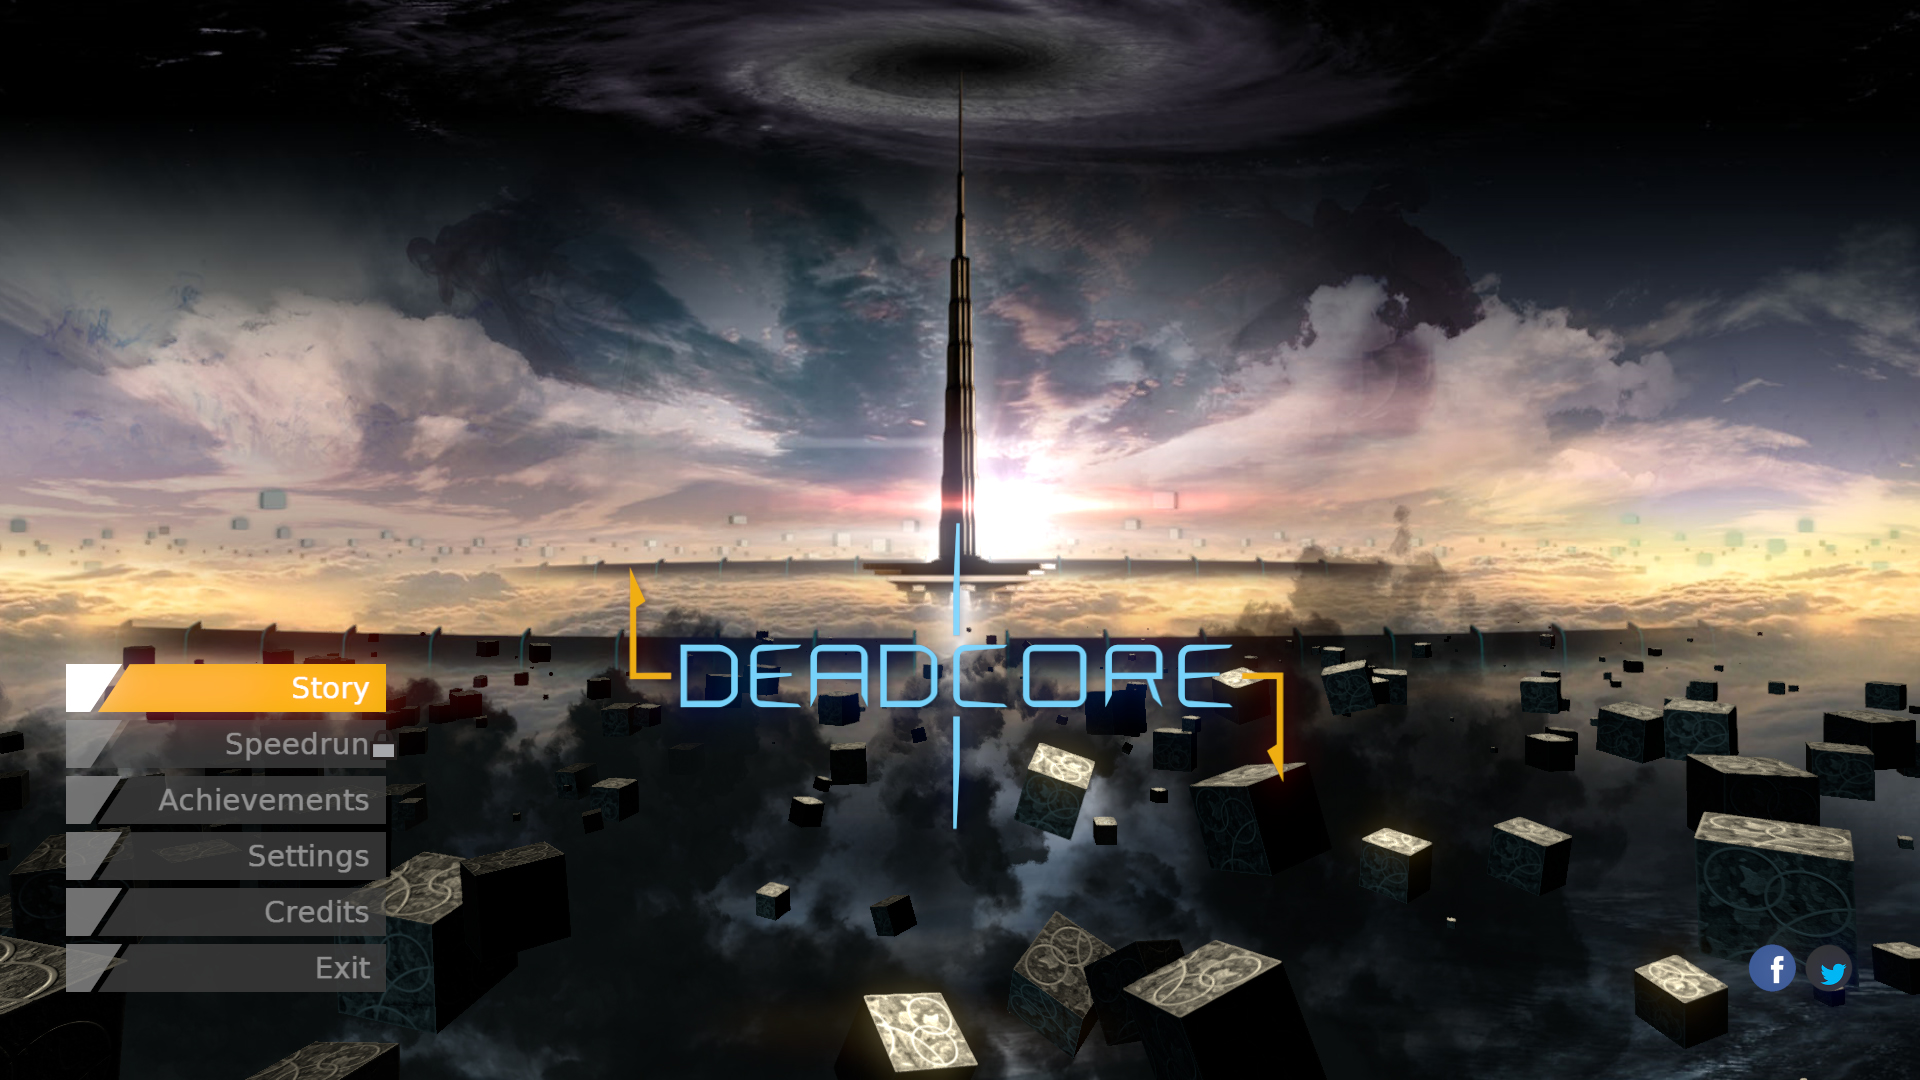 Find the best laptops for DeadCore